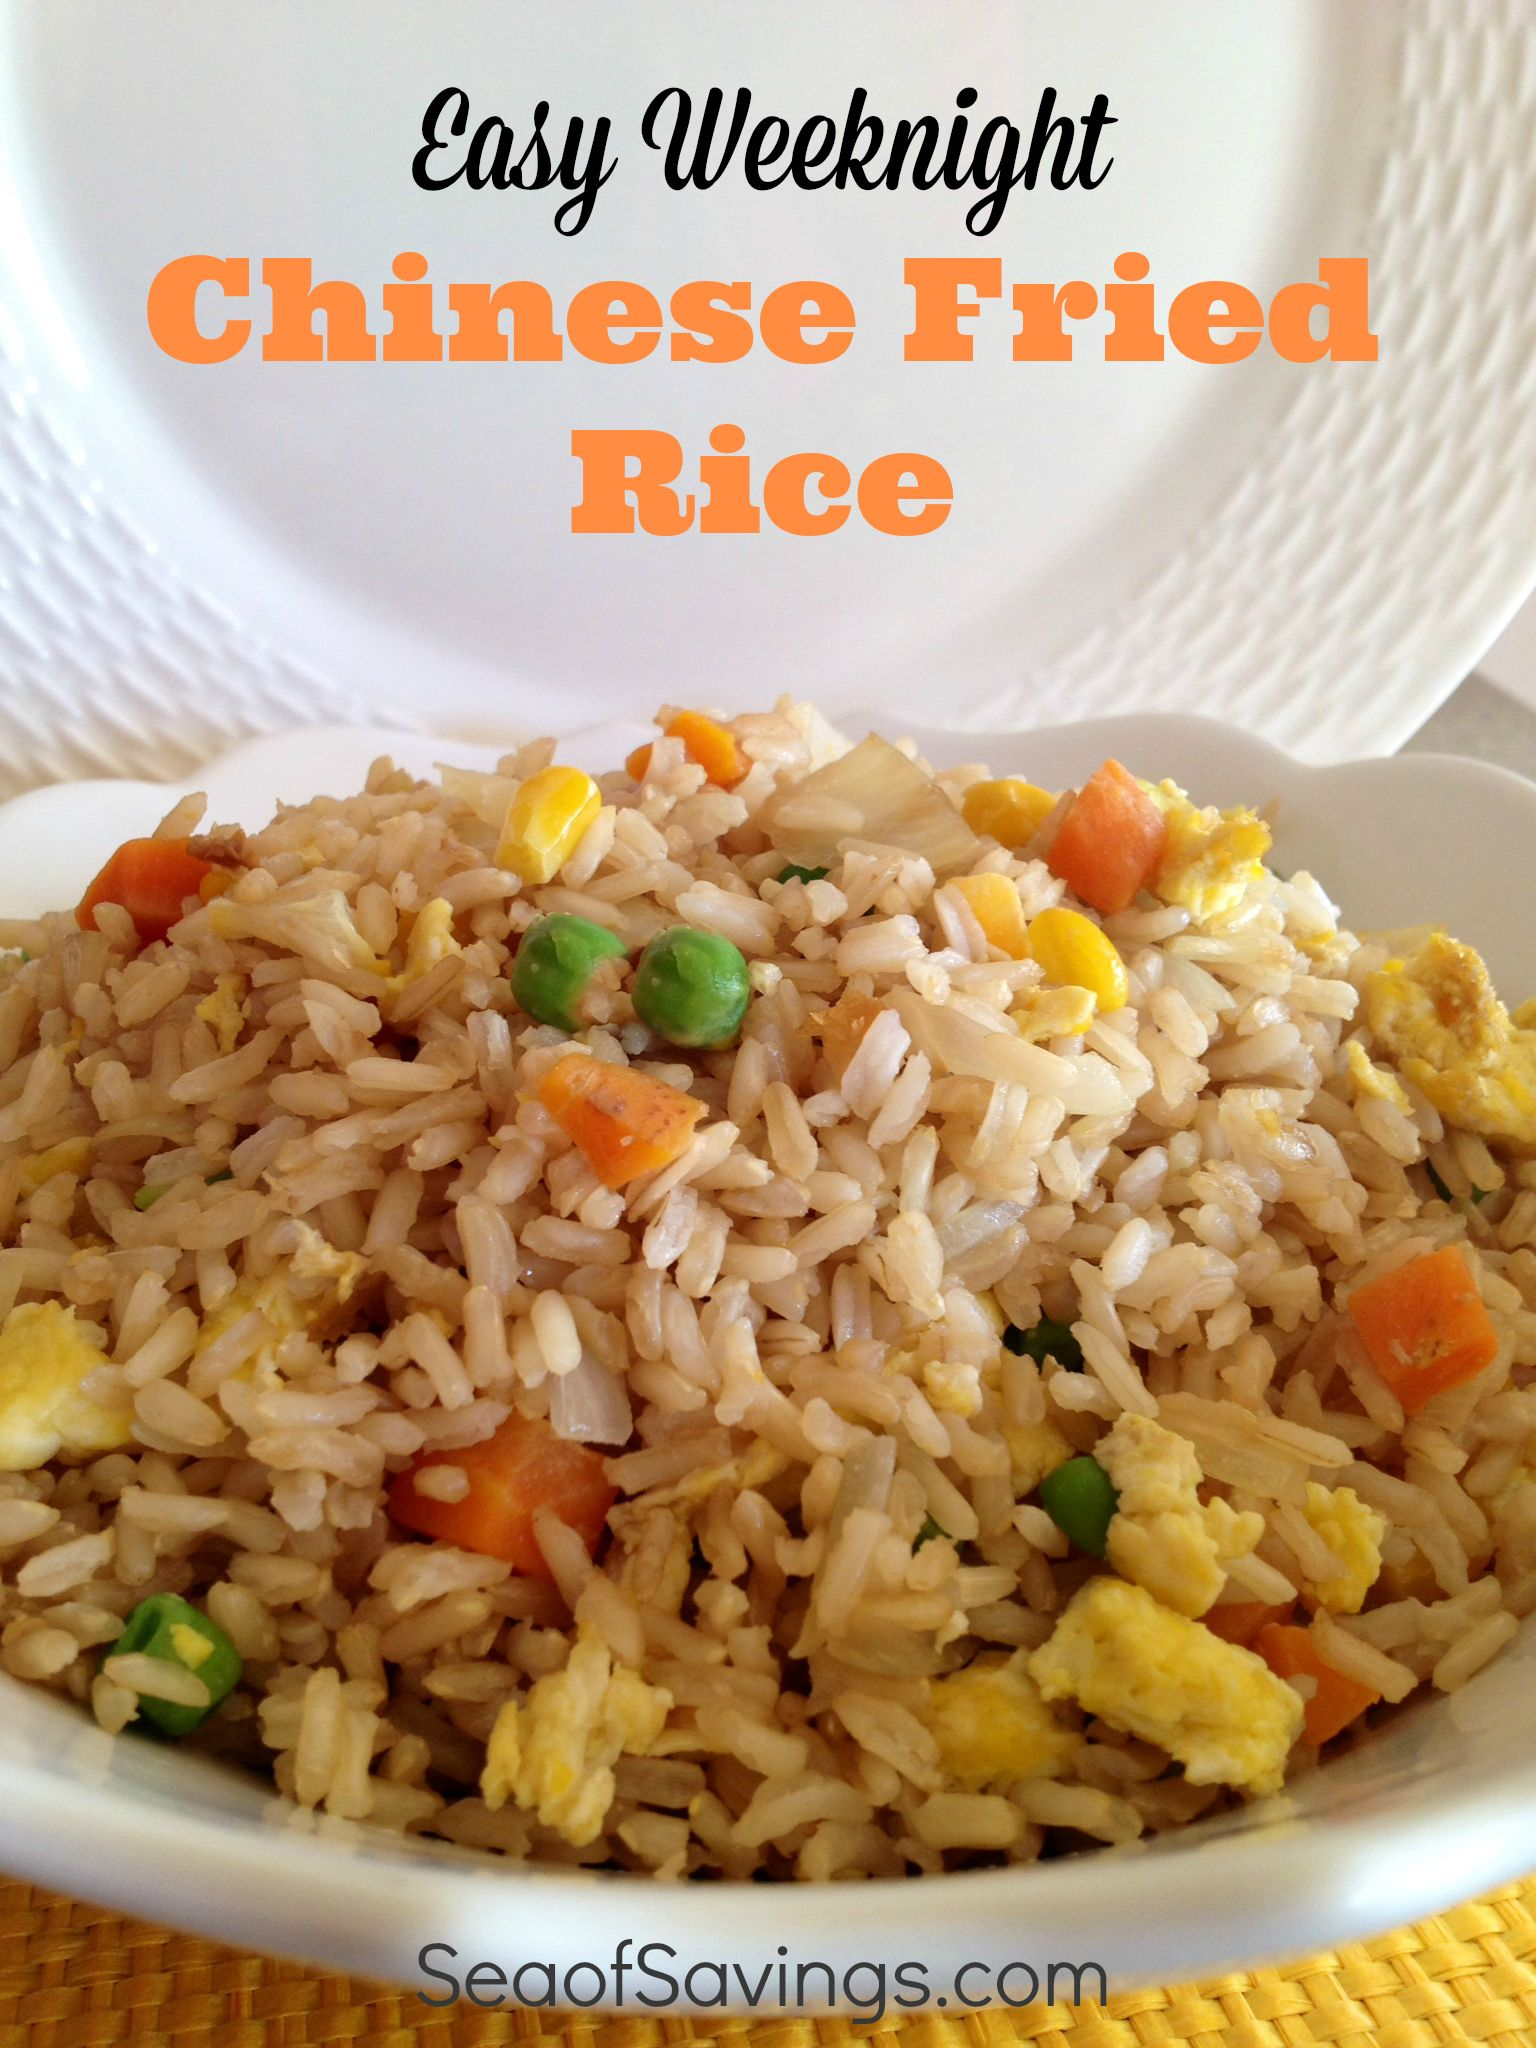 Weeknights are crazy at our house and chinese food is always a hit weeknights are crazy at our house and chinese food is always a hit so instead of ordering carryout i found this delicious easy chinese fried rice recipe ccuart Choice Image